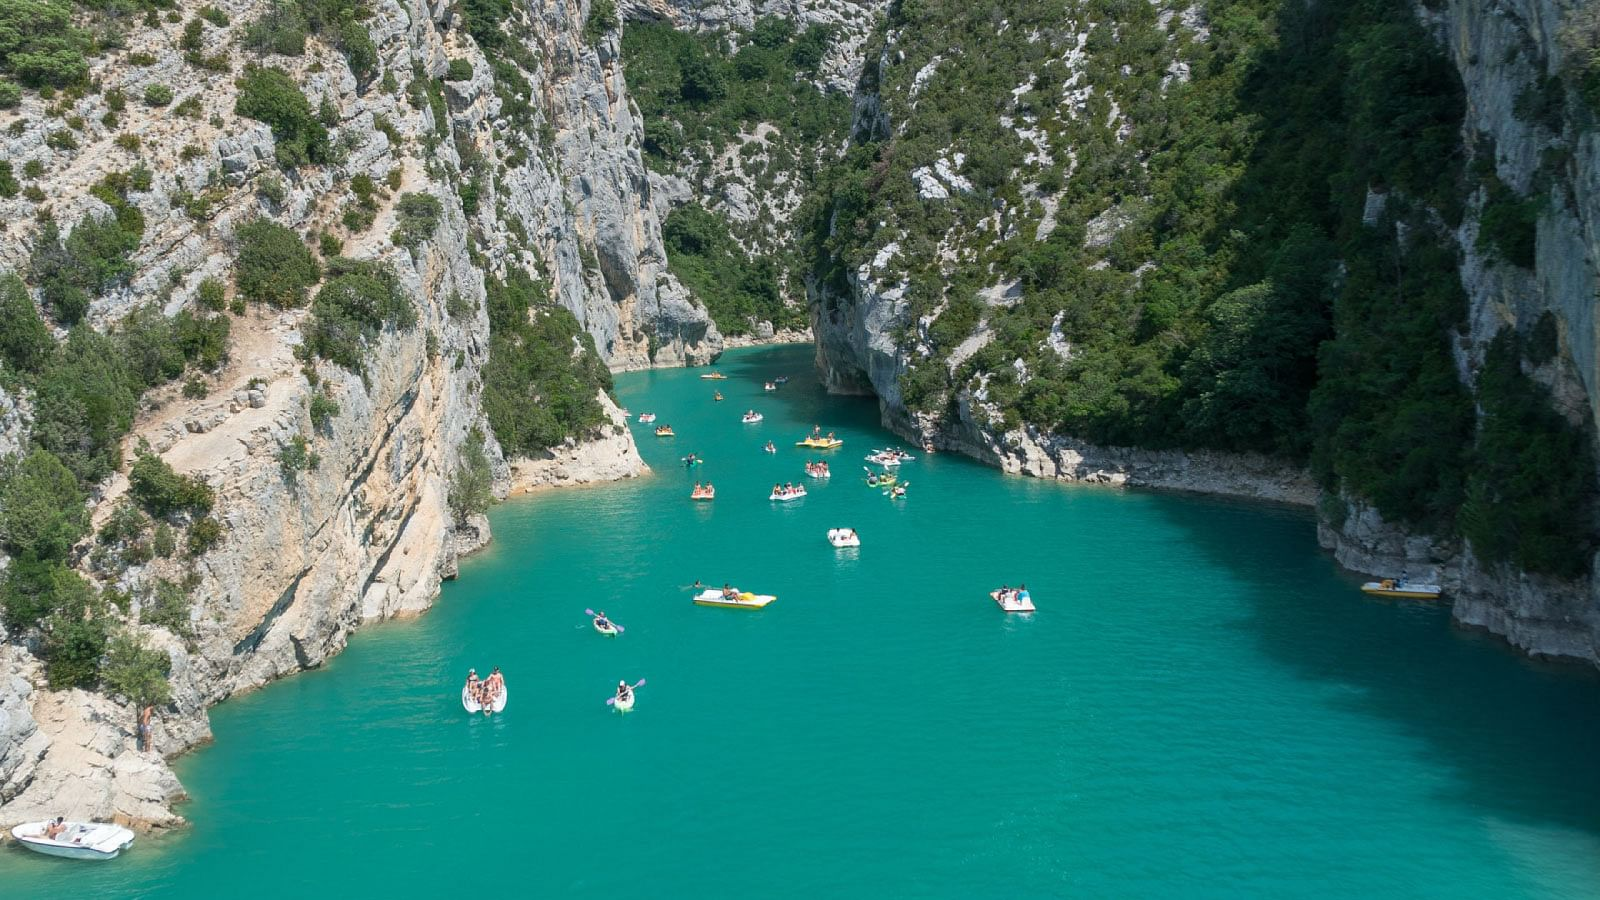 Gorges du Verdon - Grand Canyon du Verdon - lakes of the Verdon - French Riviera vacation - best trip - FranceRent